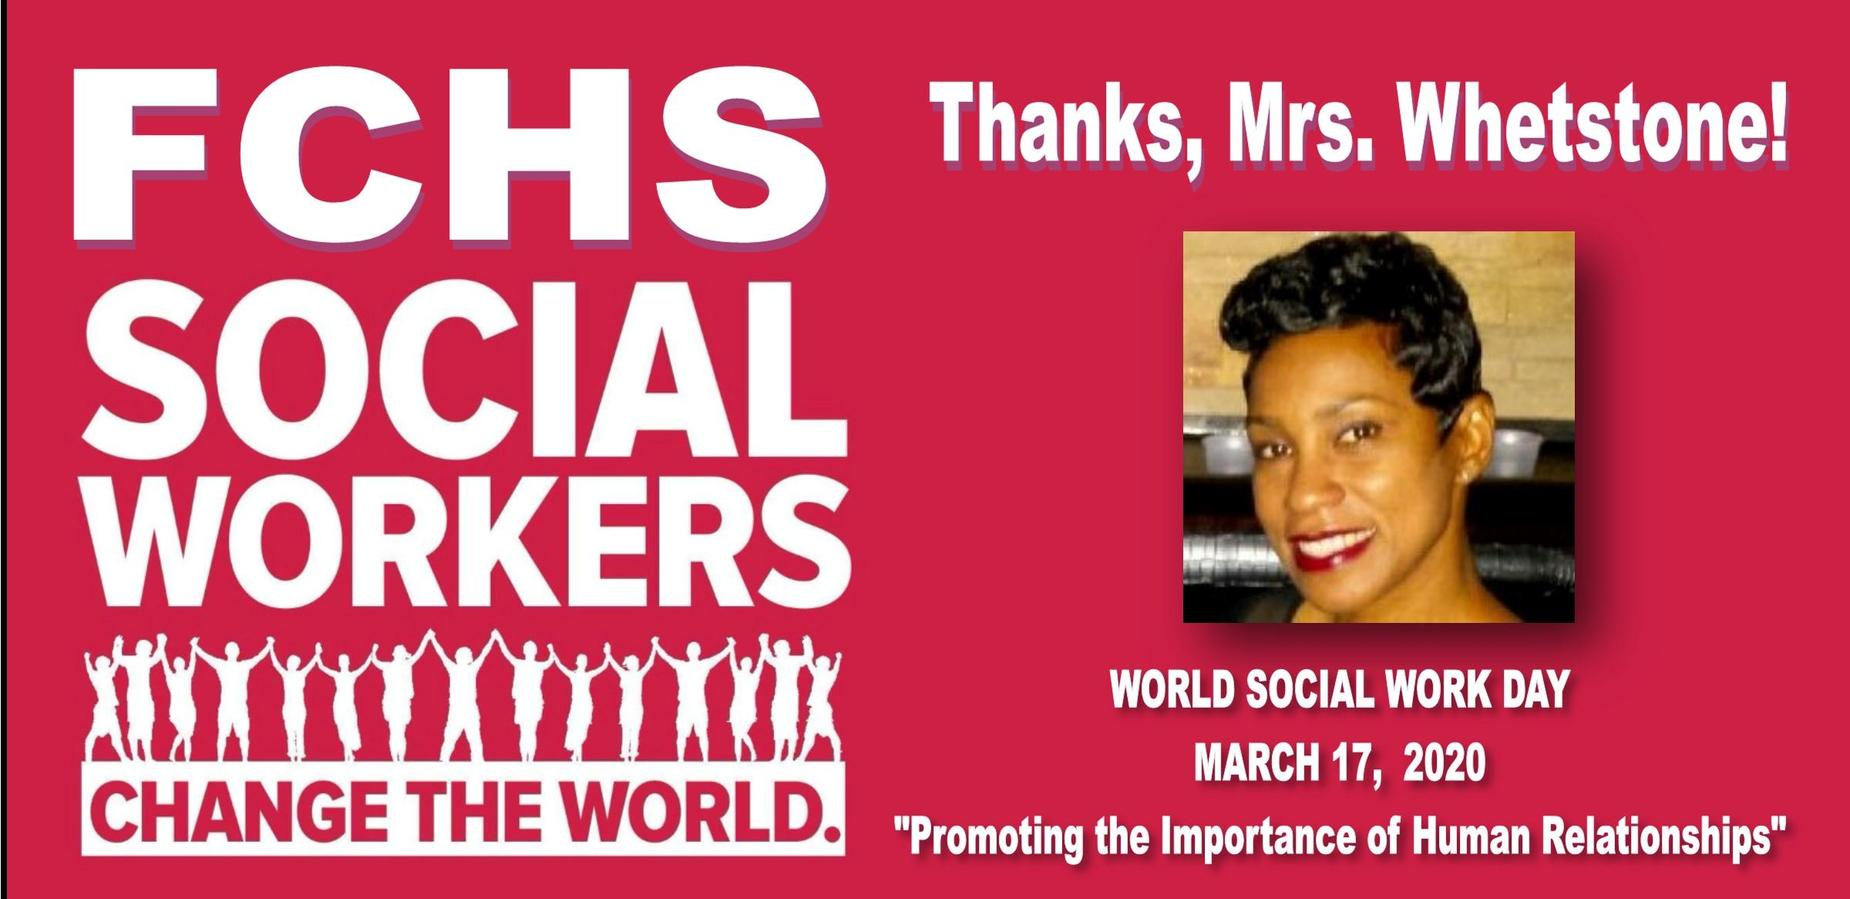 FCHS Social Workers change the world! Thanks, Mrs. Whetstone! World Social Work Day March 17